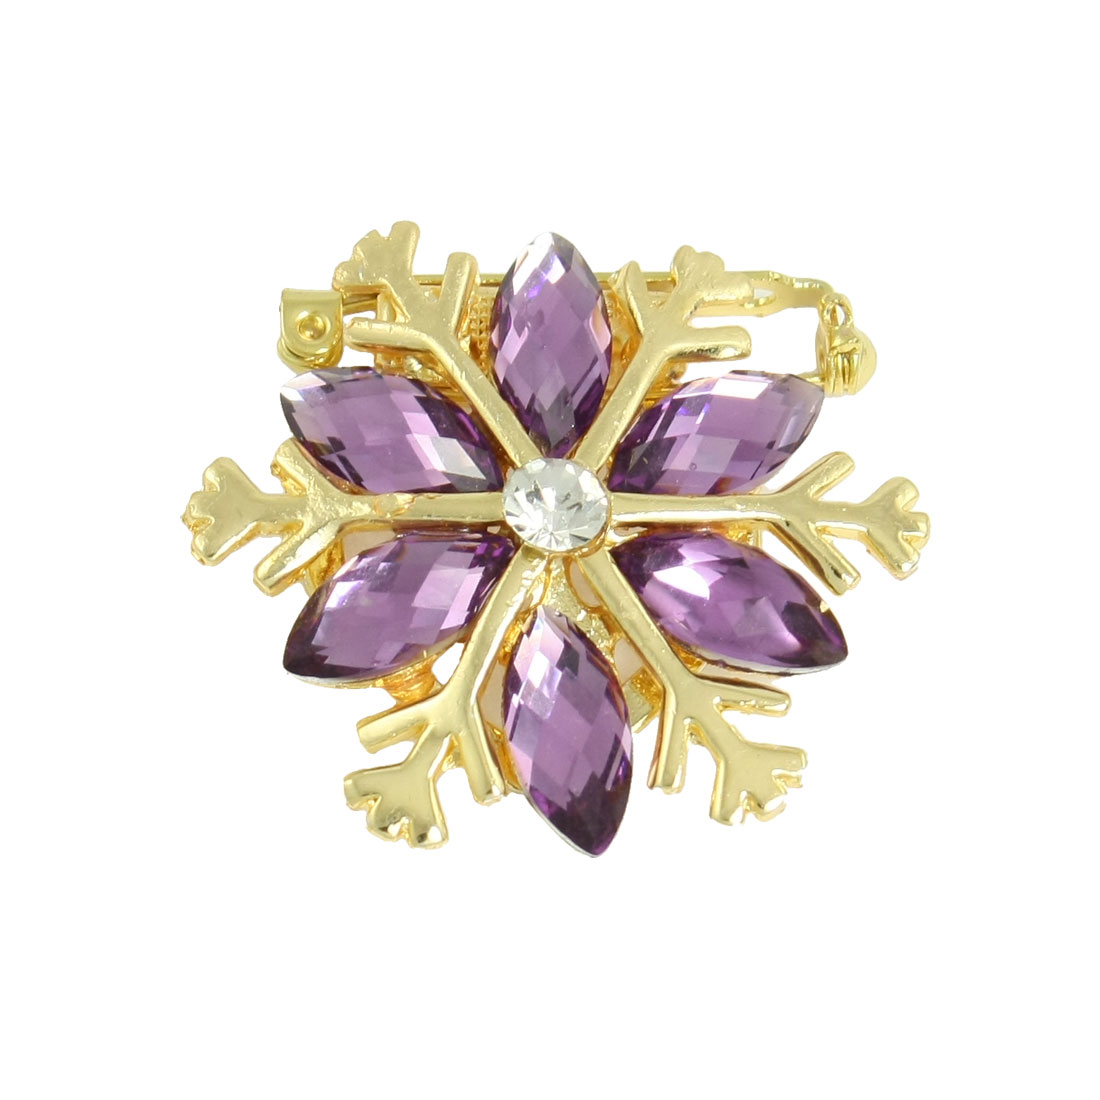 Lady Purple Glitter Rhinestone Gold Tone Metal Floral Pin Brooch